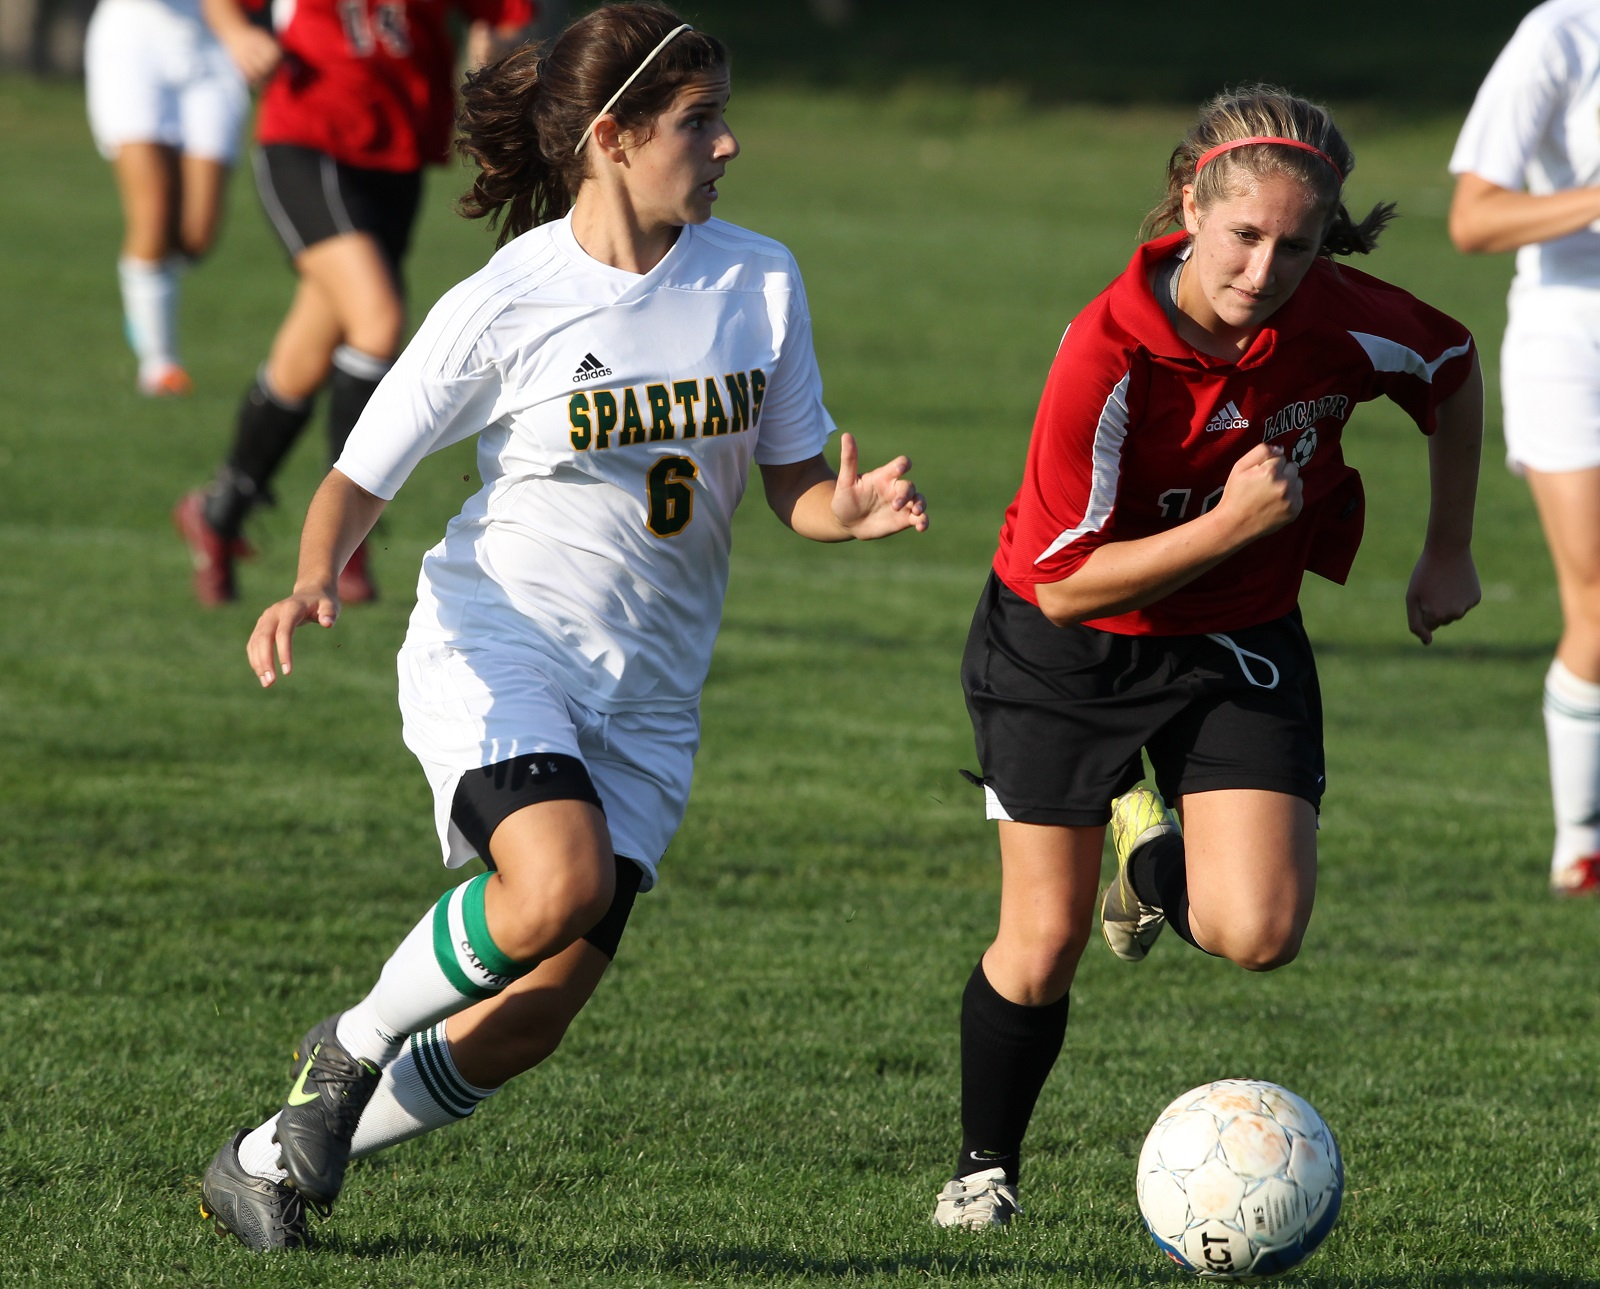 Williamsville North's Meredith Licata, left, races for a ball against Lancaster's Kailee Juzdowski in 2012. Licata now stars for Trinity College, while Juzdowski earned AMCC honors with D'Youville. (James P. McCoy/Buffalo News file photo)